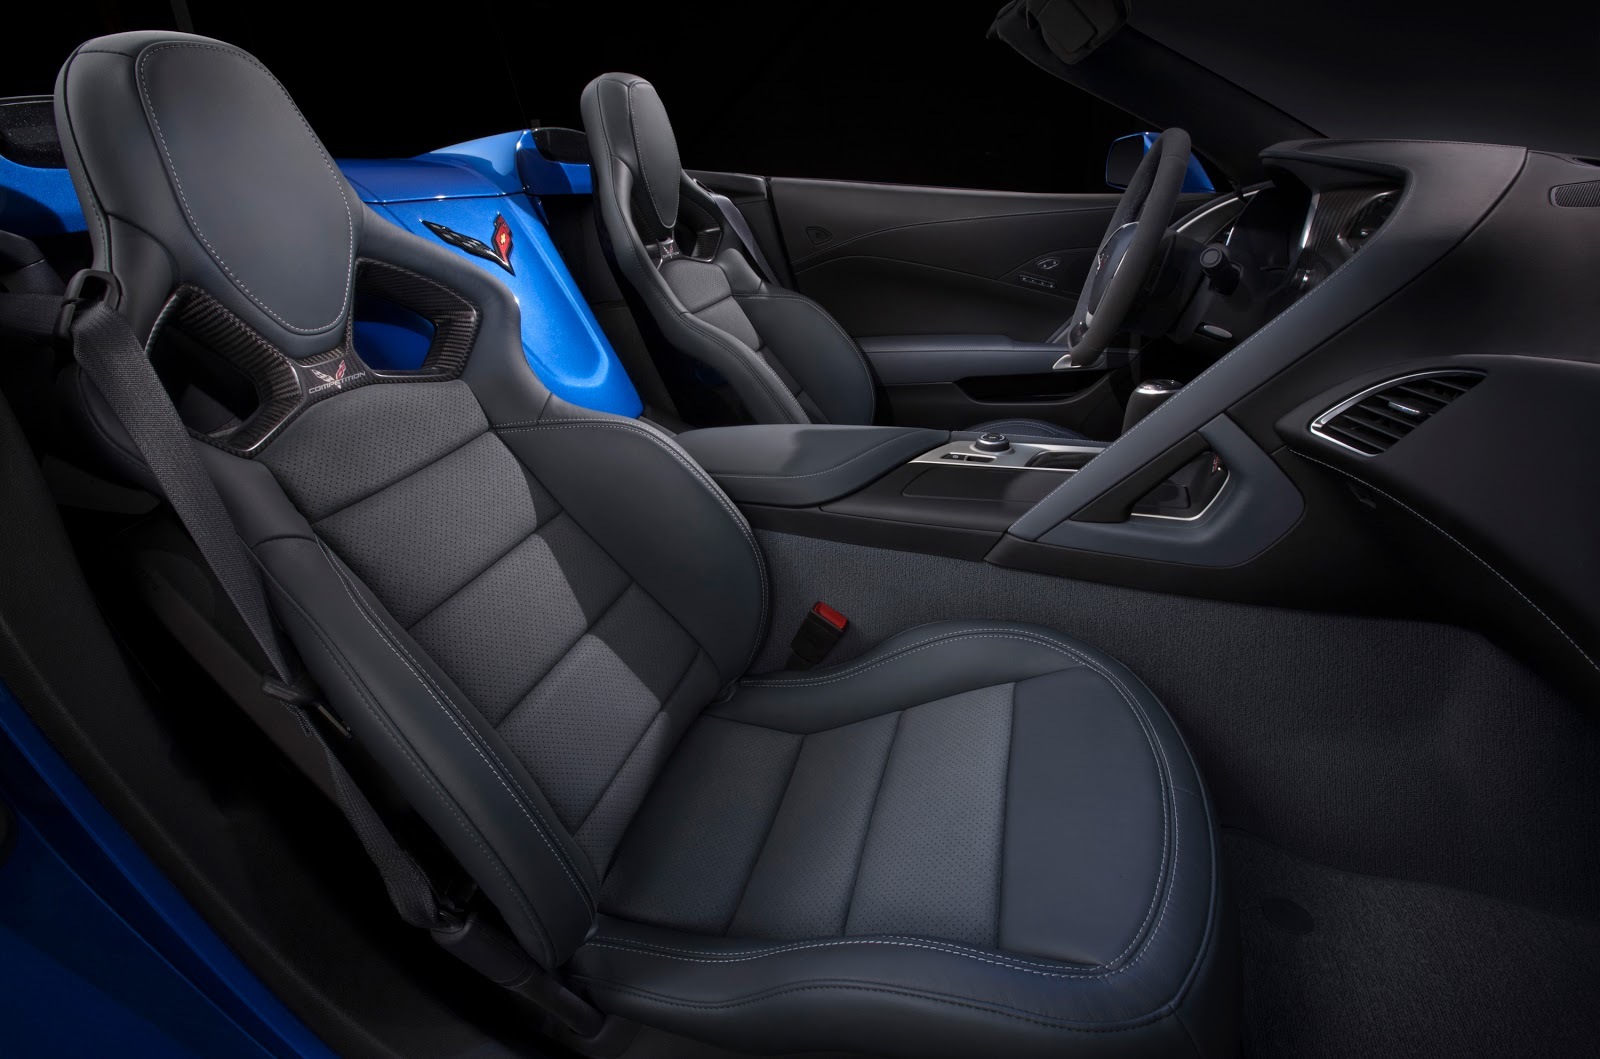 2015 Corvette Z06 Convertible Interior Unprecedented Attention To Detail  And Build Quality Complements The Corvette Z06u0027s Performance.